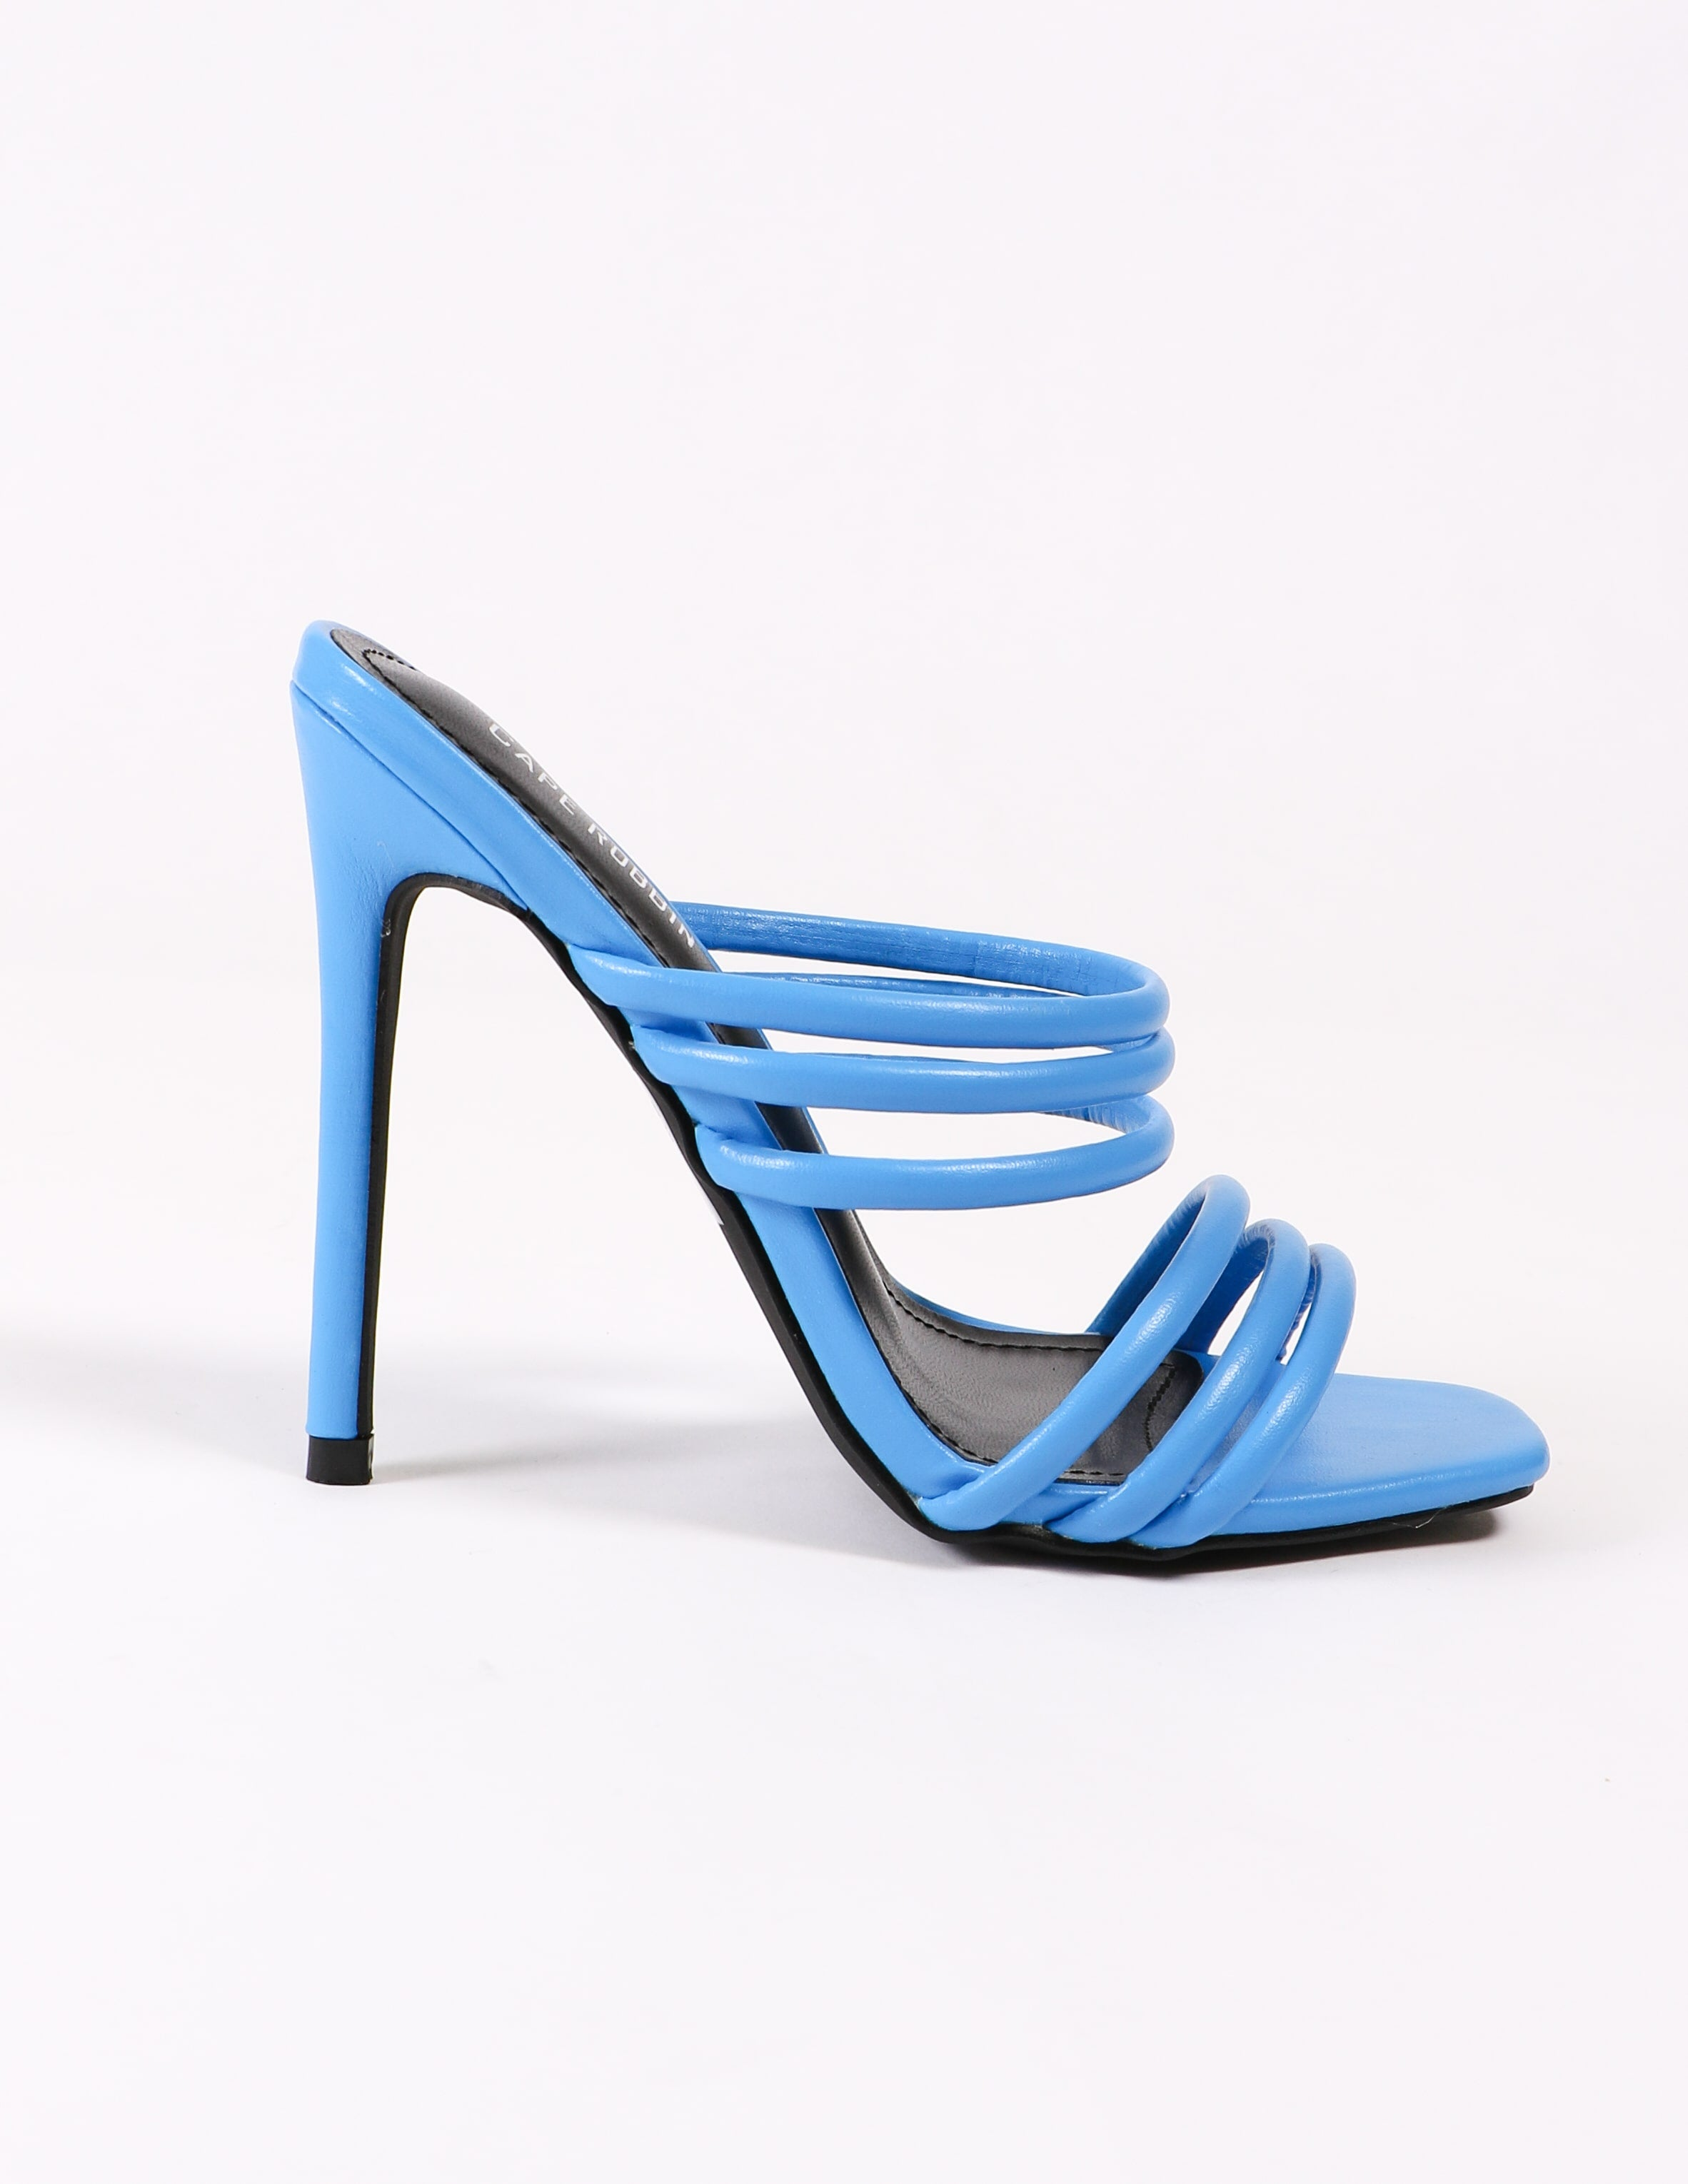 side view of the blue strappy heel on white background - elle bleu